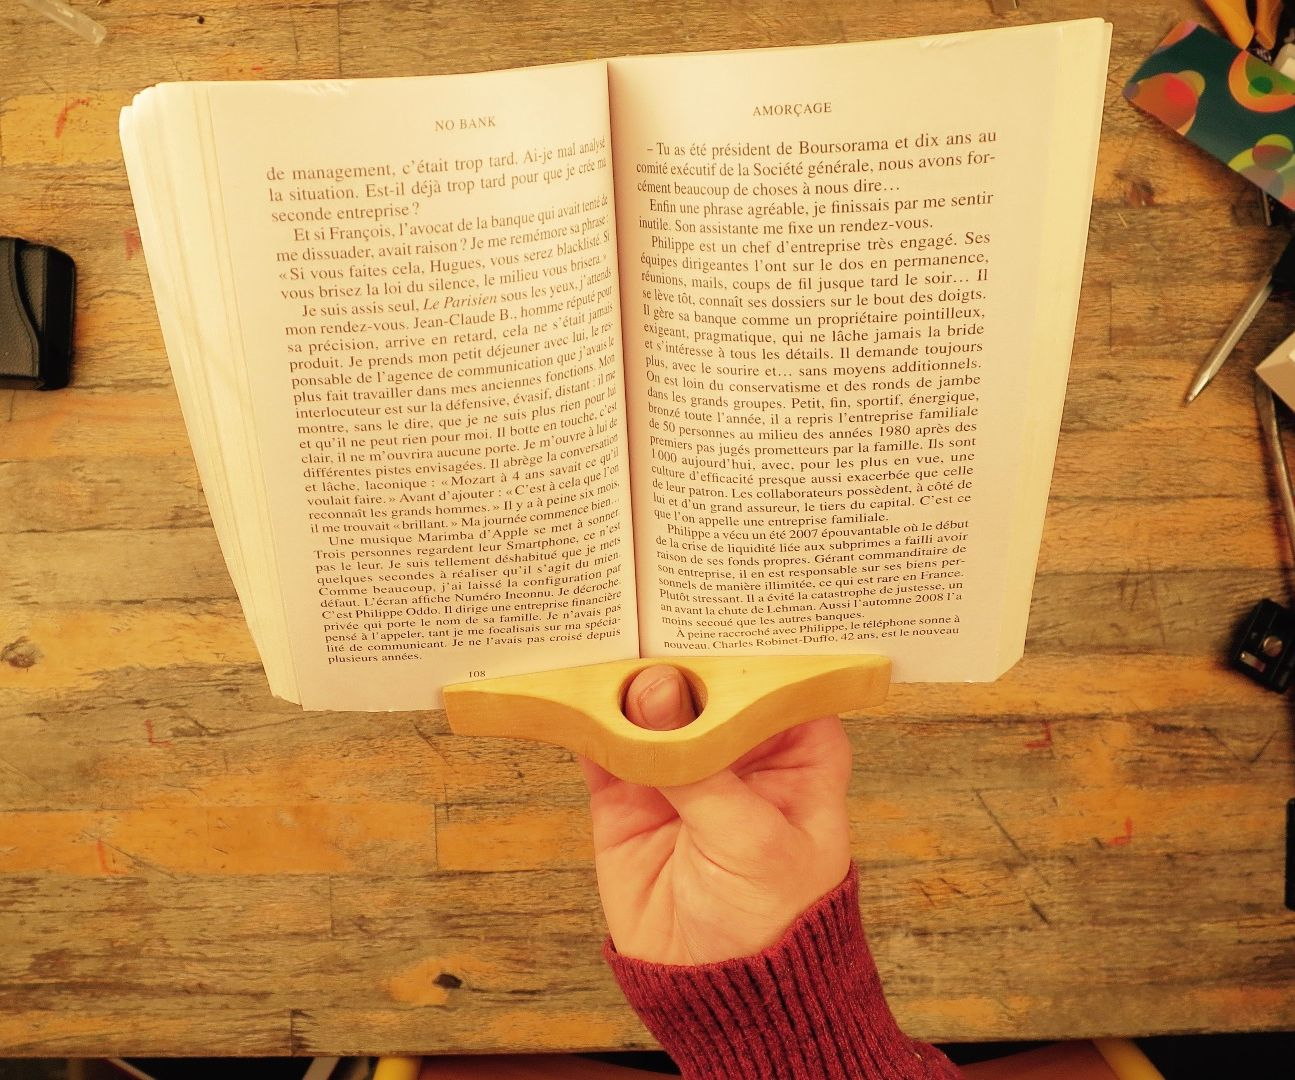 Reading by one hand